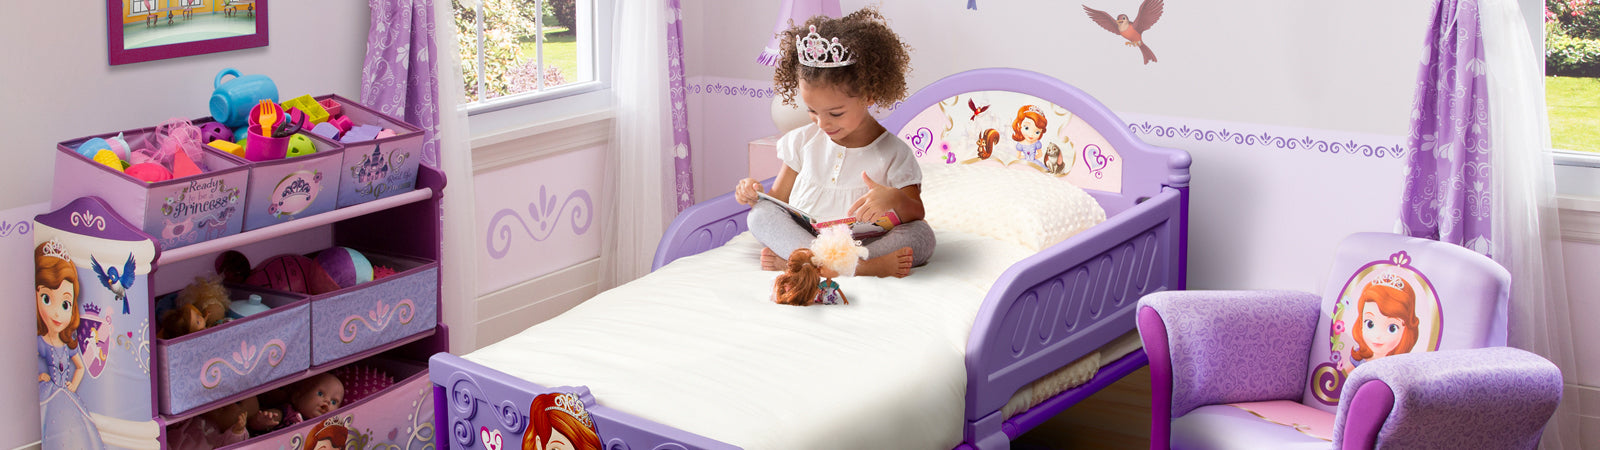 Disney Sofia the First Furniture & Disney Sofia the First | Delta Childrenu0027s Products islam-shia.org